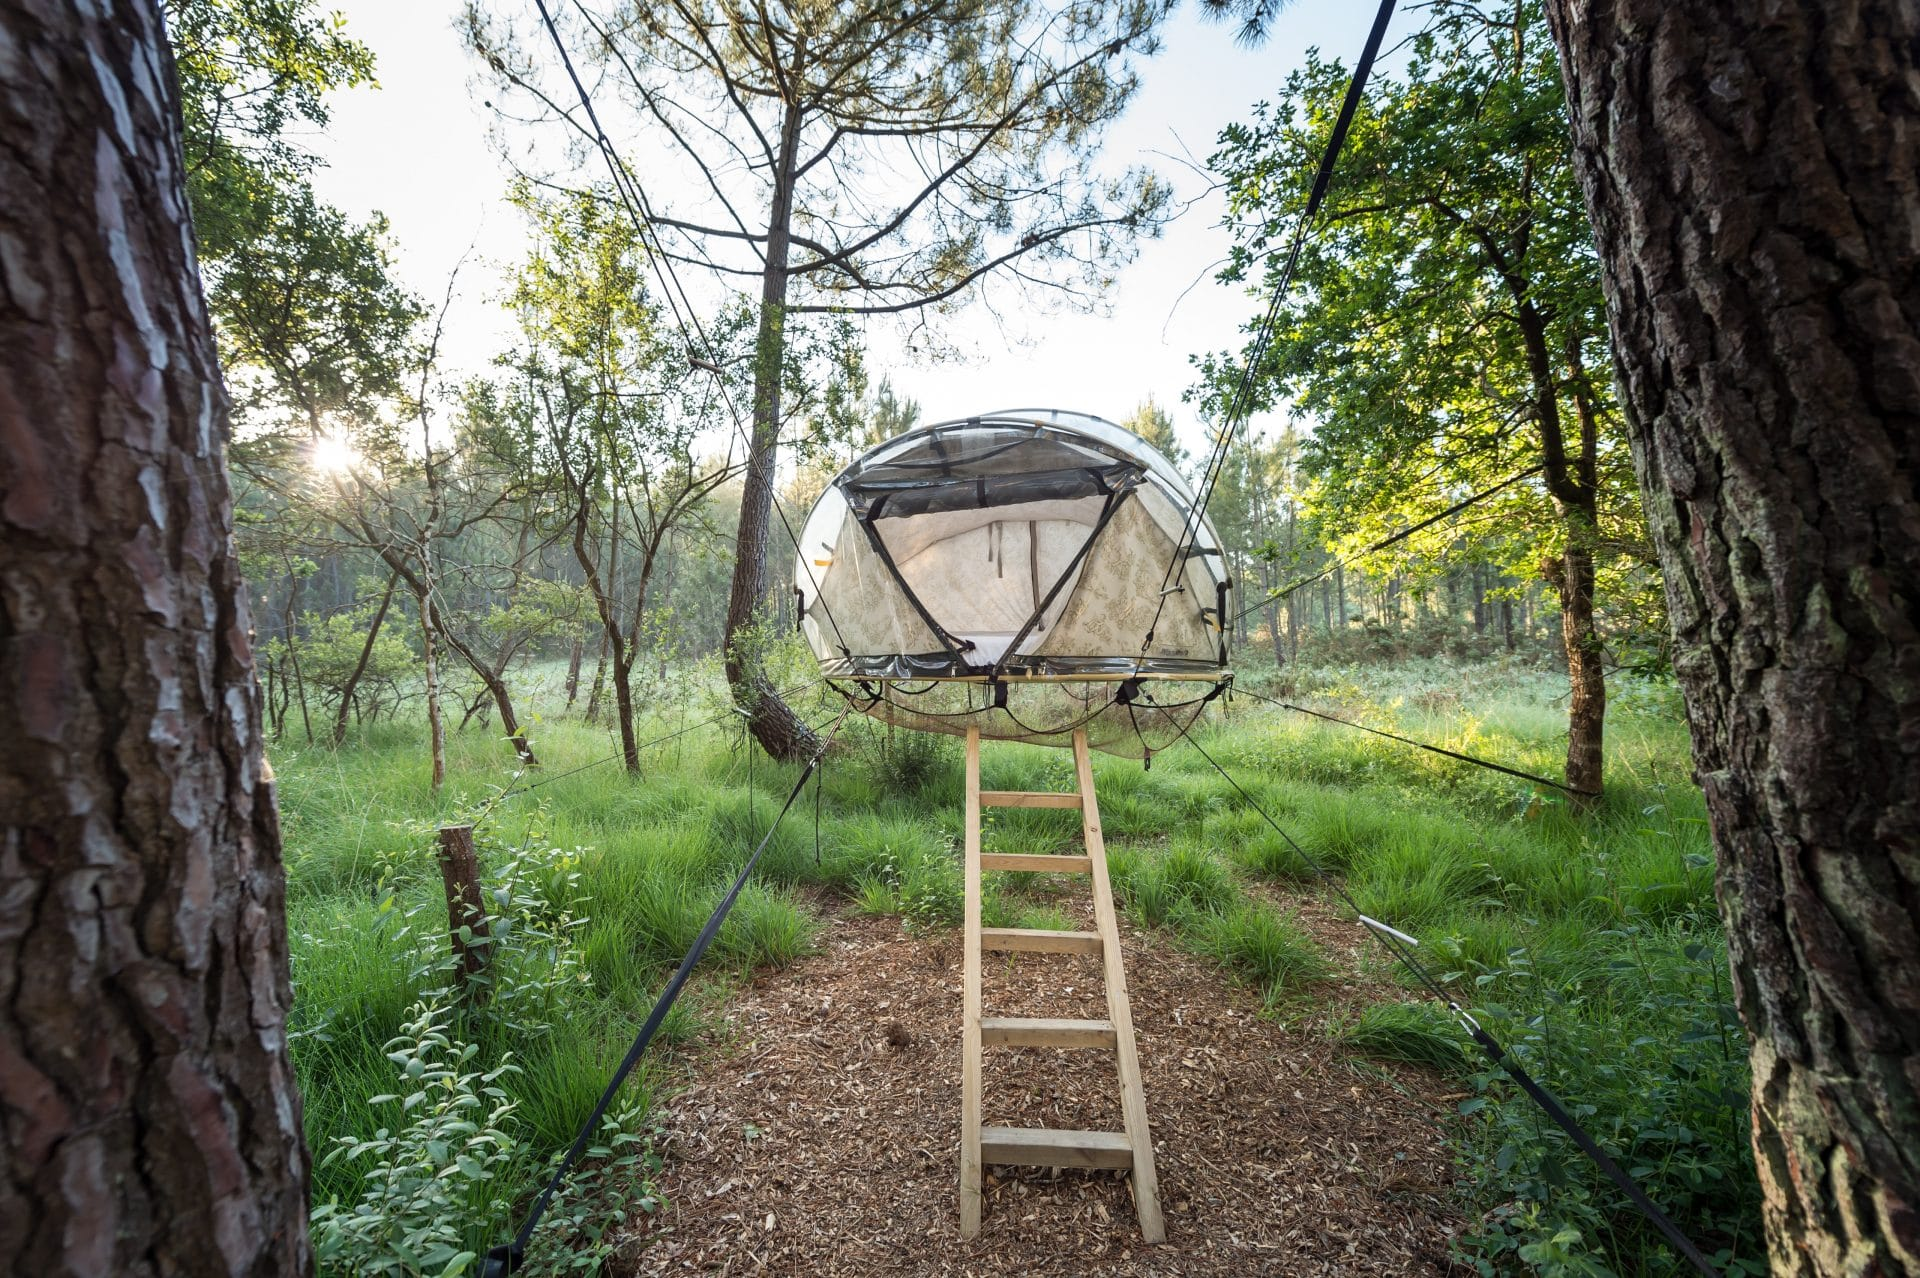 dormir dans une bulle dans les arbres insolite en bretagne. Black Bedroom Furniture Sets. Home Design Ideas